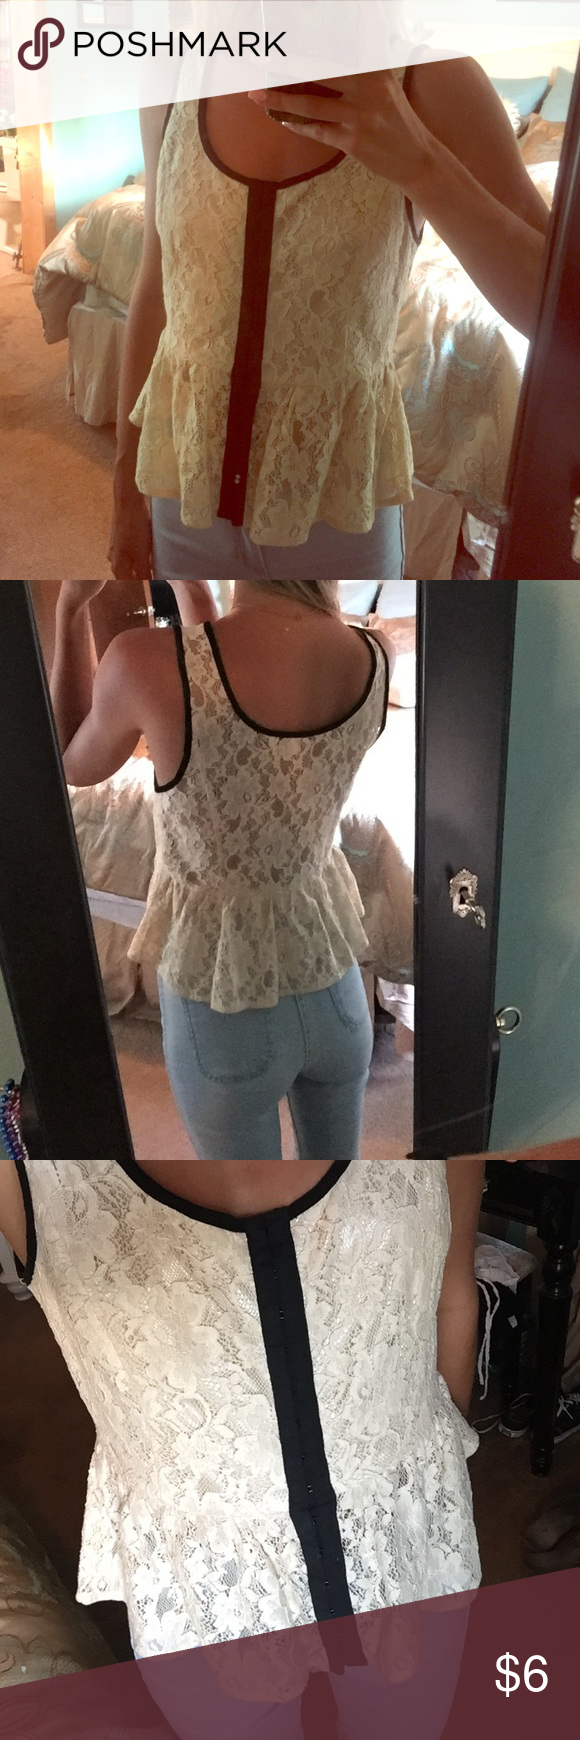 forever 21 lace peplum top off white/black button up peplum top. lace. back is see through. super cute... just realized i don't ever really wear it. Forever 21 Tops